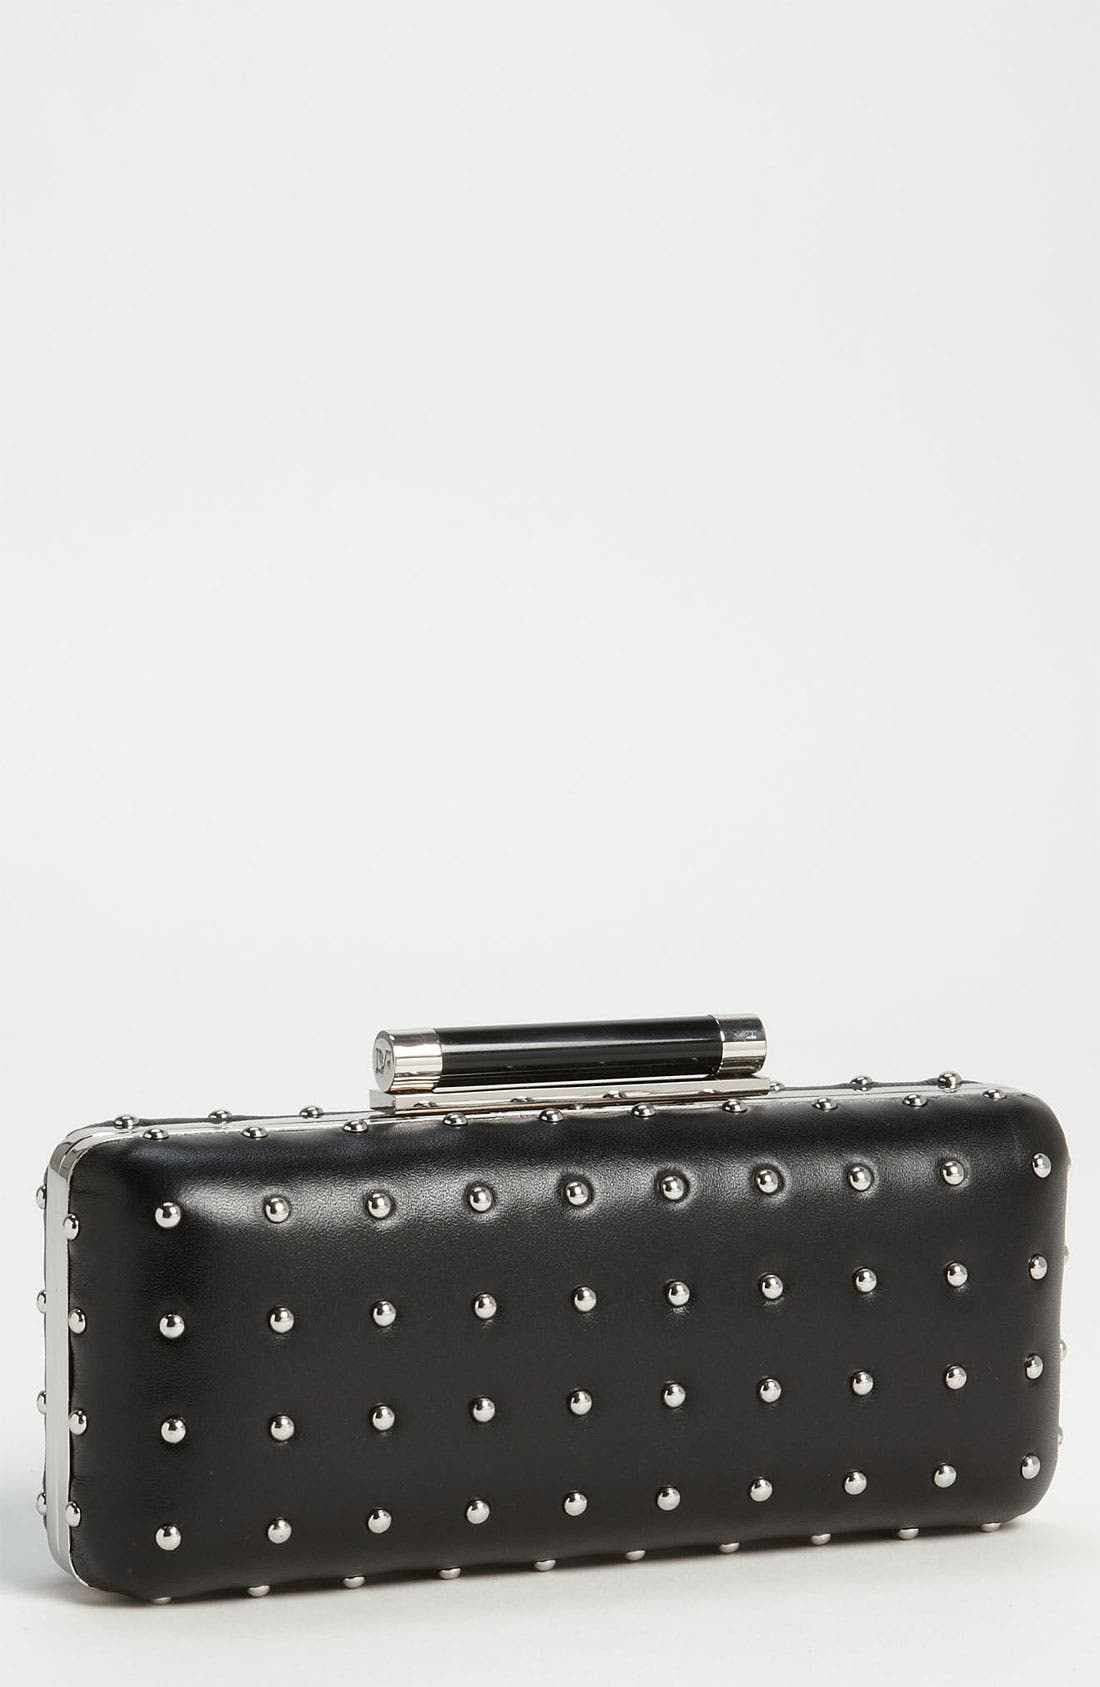 Alternate Image 1 Selected - Diane von Furstenberg 'Tonda' Studded Clutch